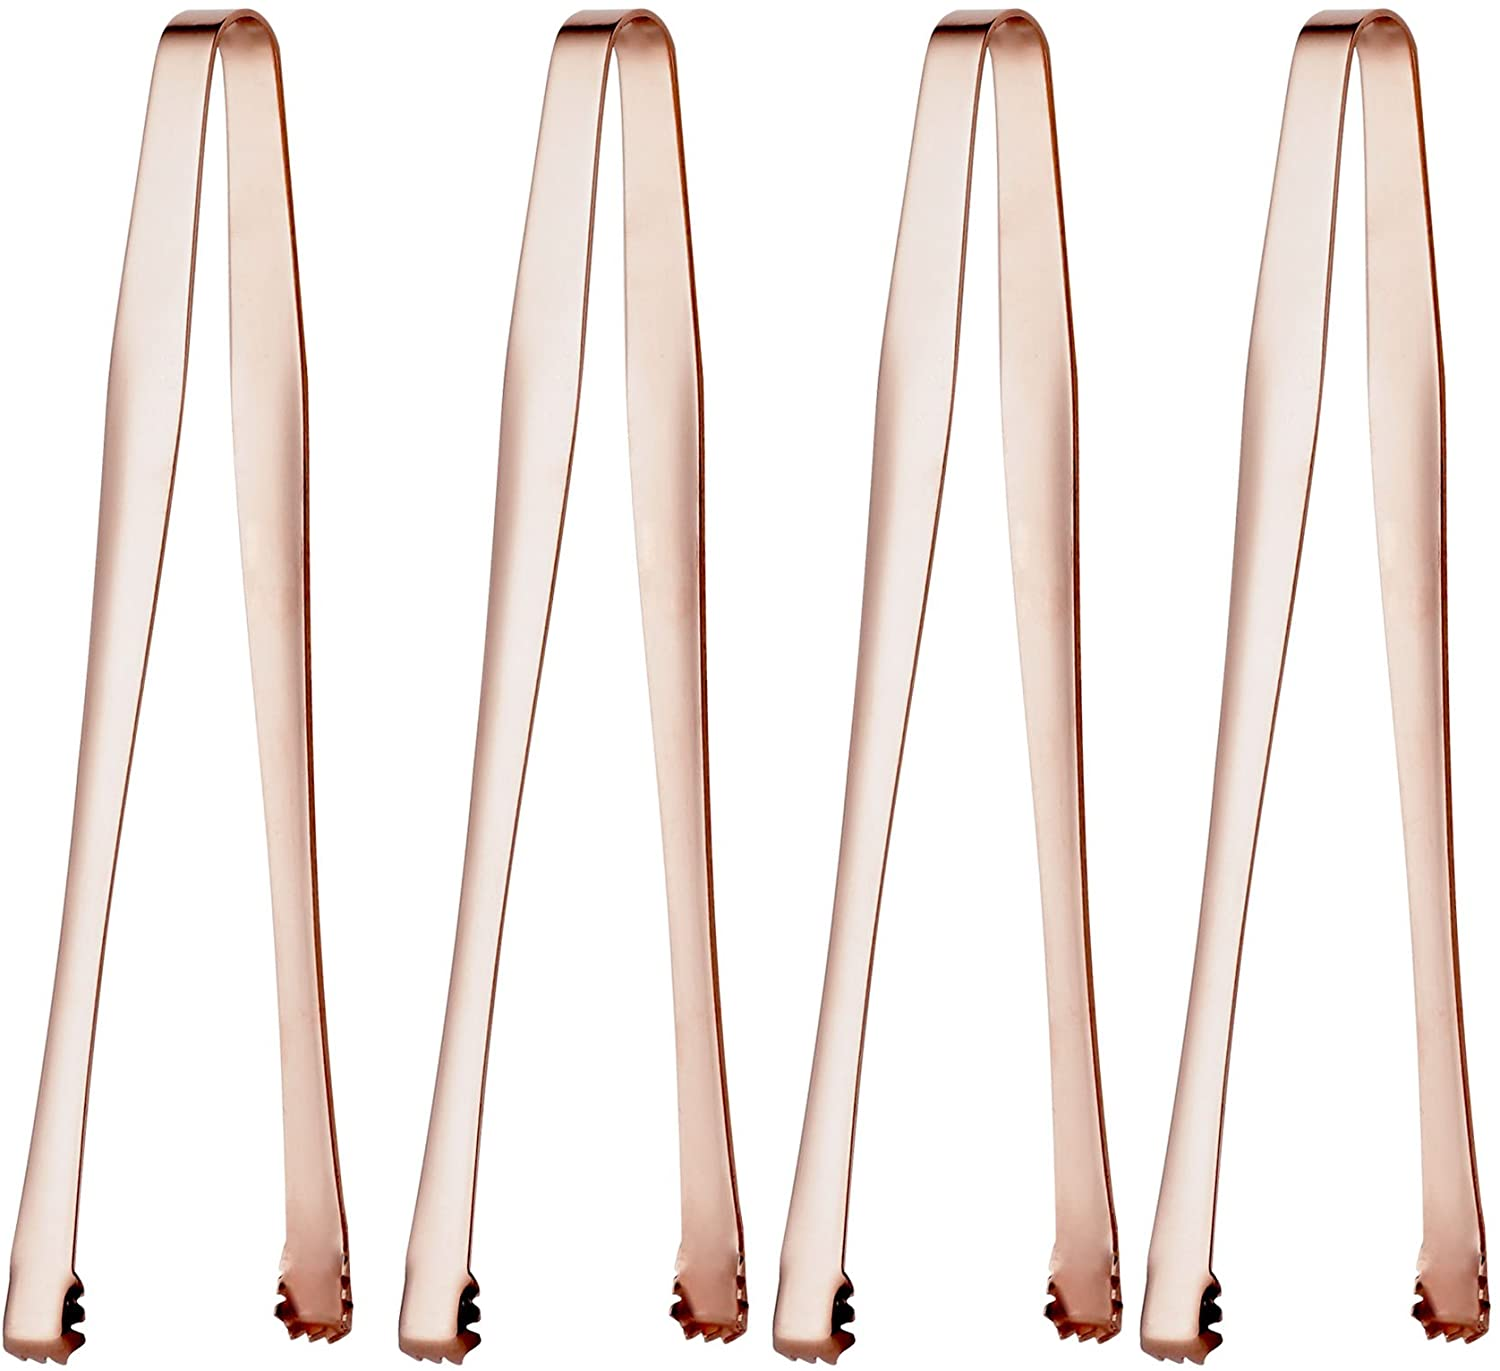 Sugar Tongs Rose Gold Set of 4 Stainless Steel Ice Tongs for Kitchen Tongues Food Folder and Ice Clip Tea Party Mini Palm Handle Wedding Cubic Sugar Nip 6-inch Mirror Polished by OMGard